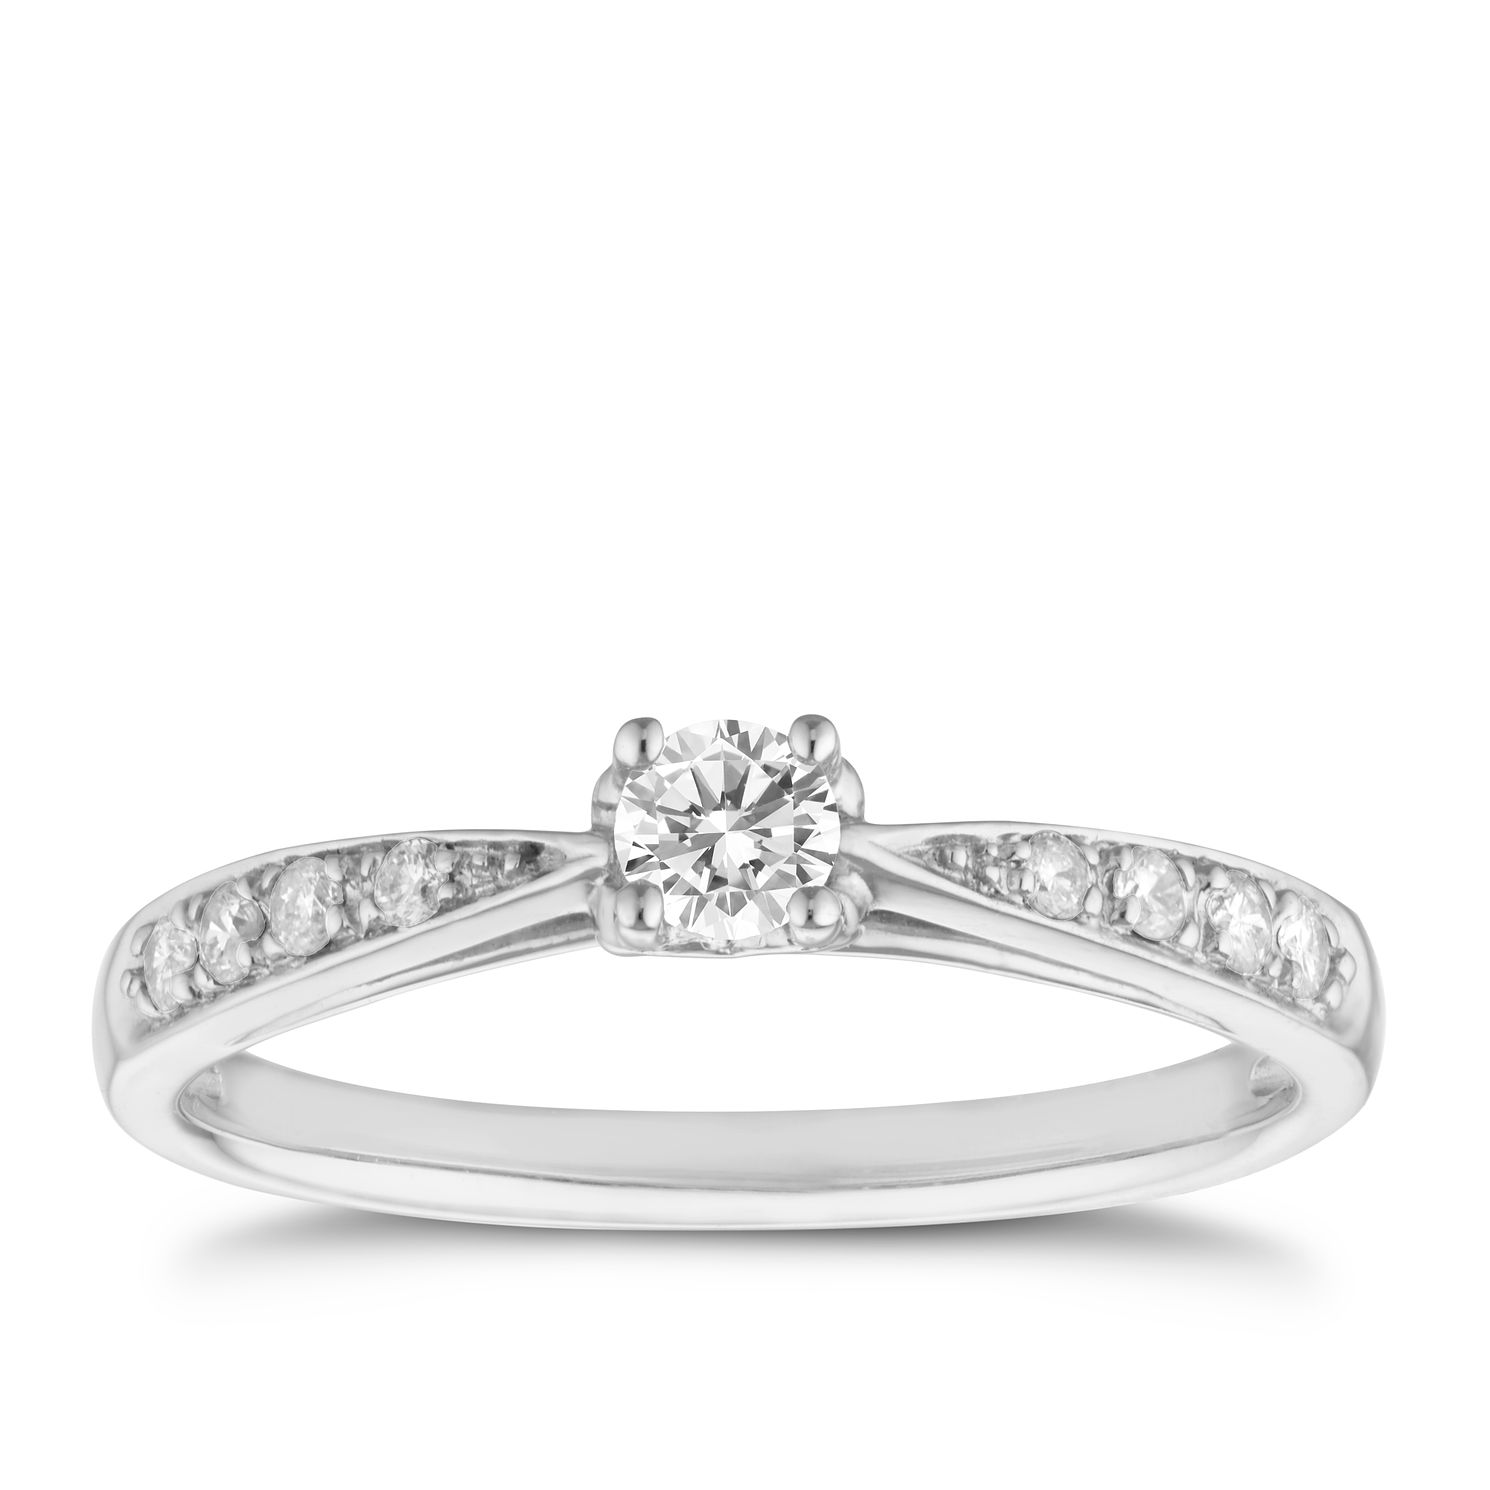 please here is ring mine have pretty wedding but rings s big feel a i don pic considering topic t my size ct